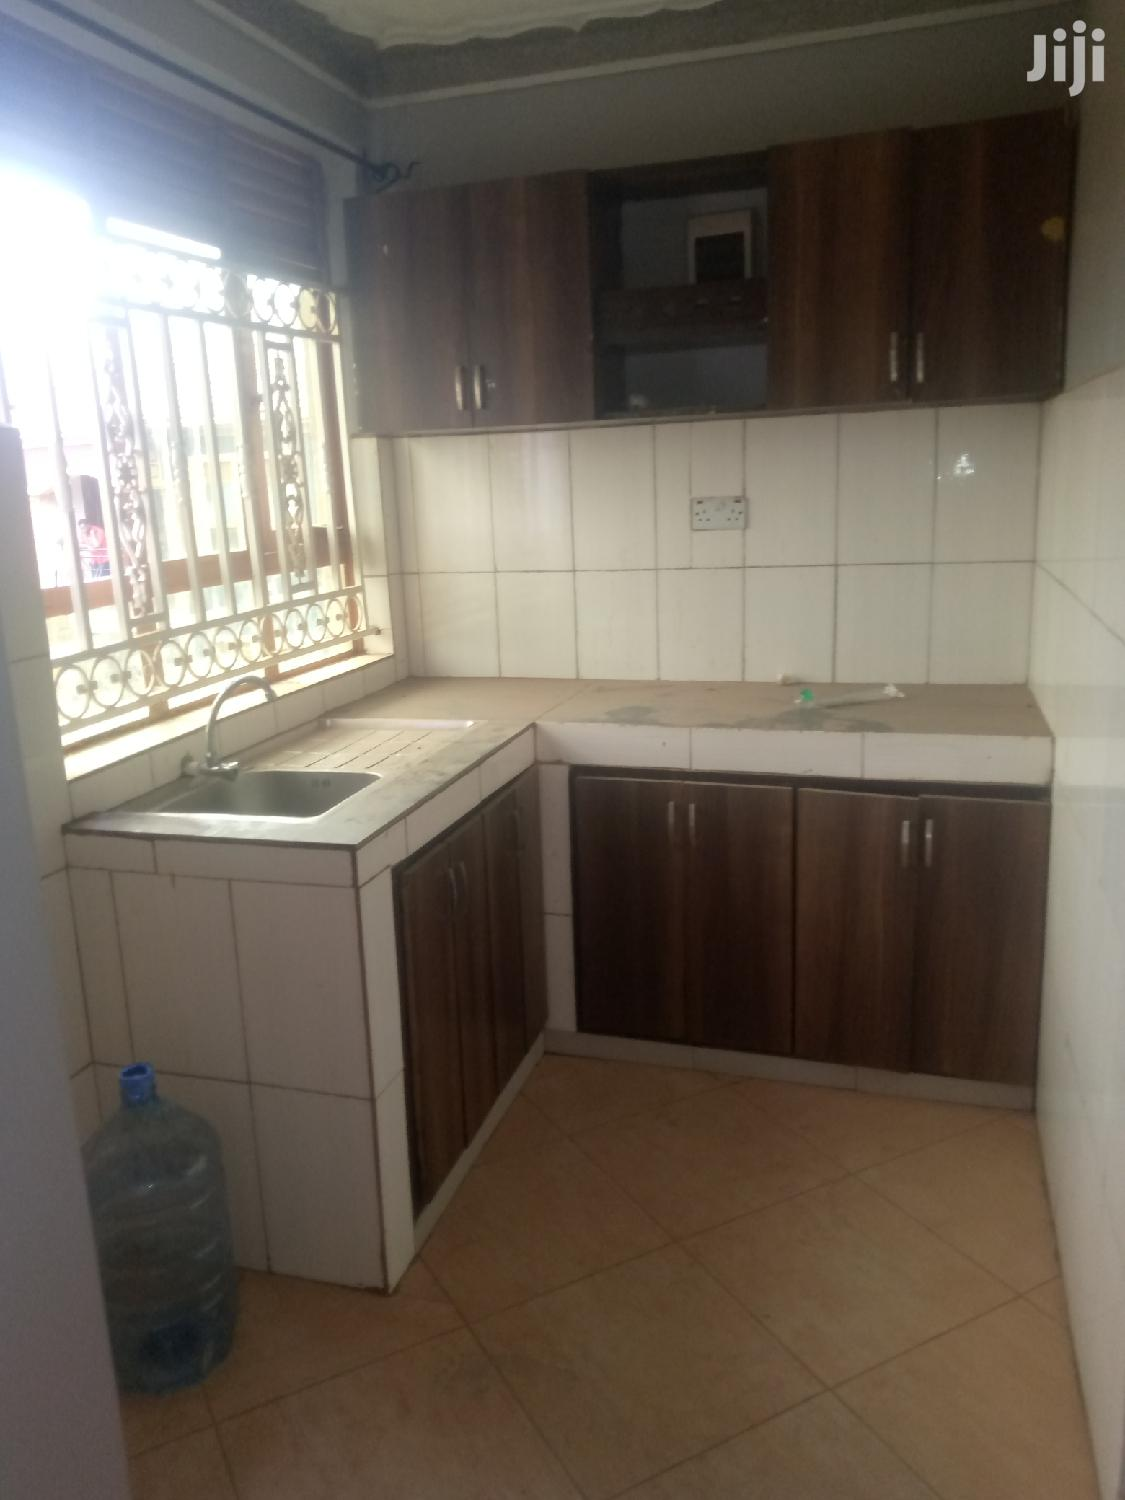 Archive: Two Bedroom House For Rent In Kyaliwajjala